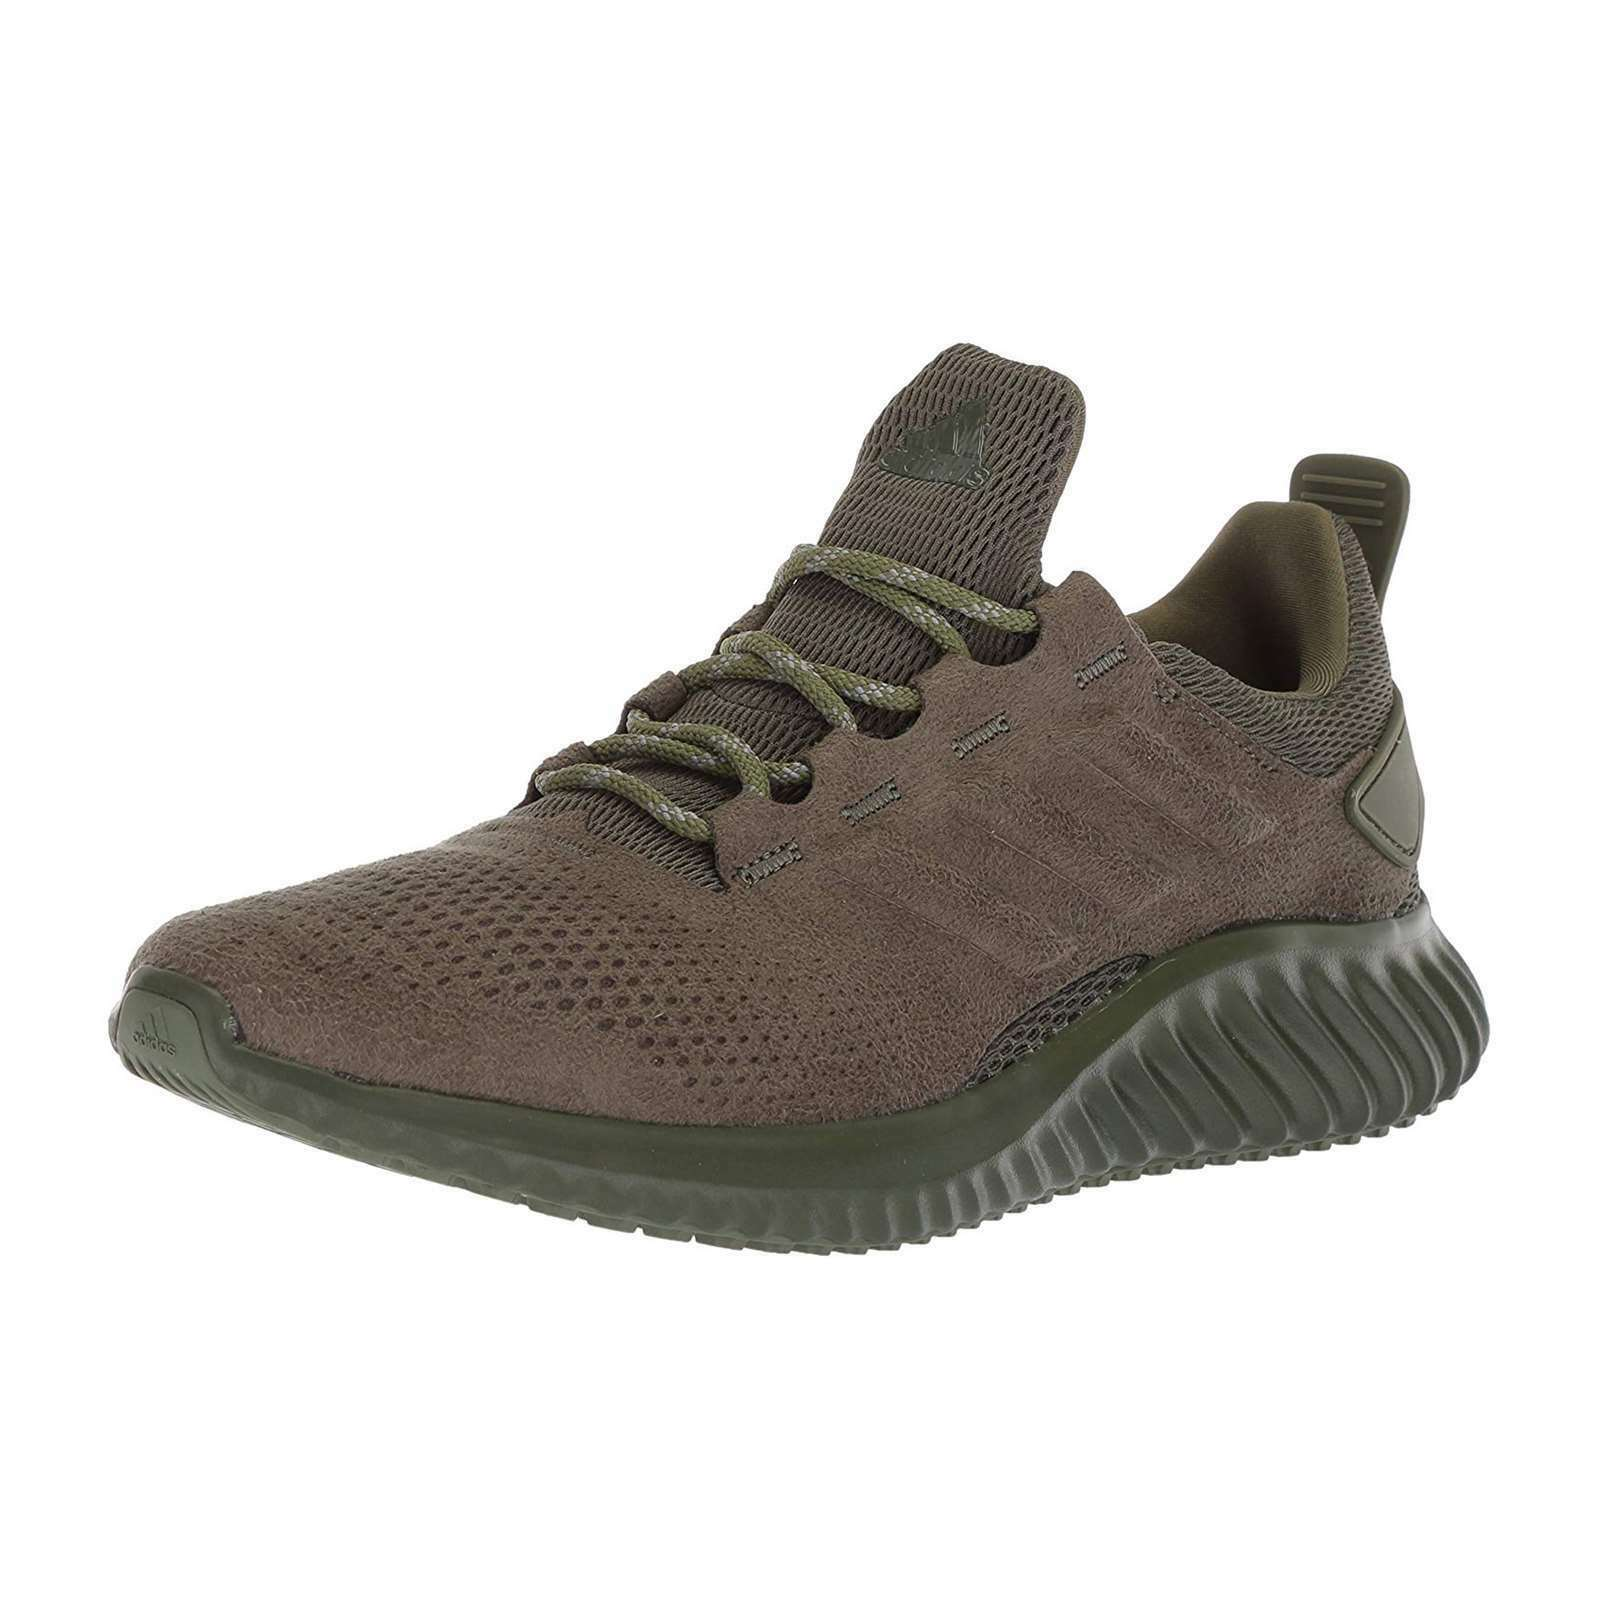 a084dc41f7d3 adidas Alphabounce CR M Cg4572 Olive Green DS Size 8.5 for sale ...